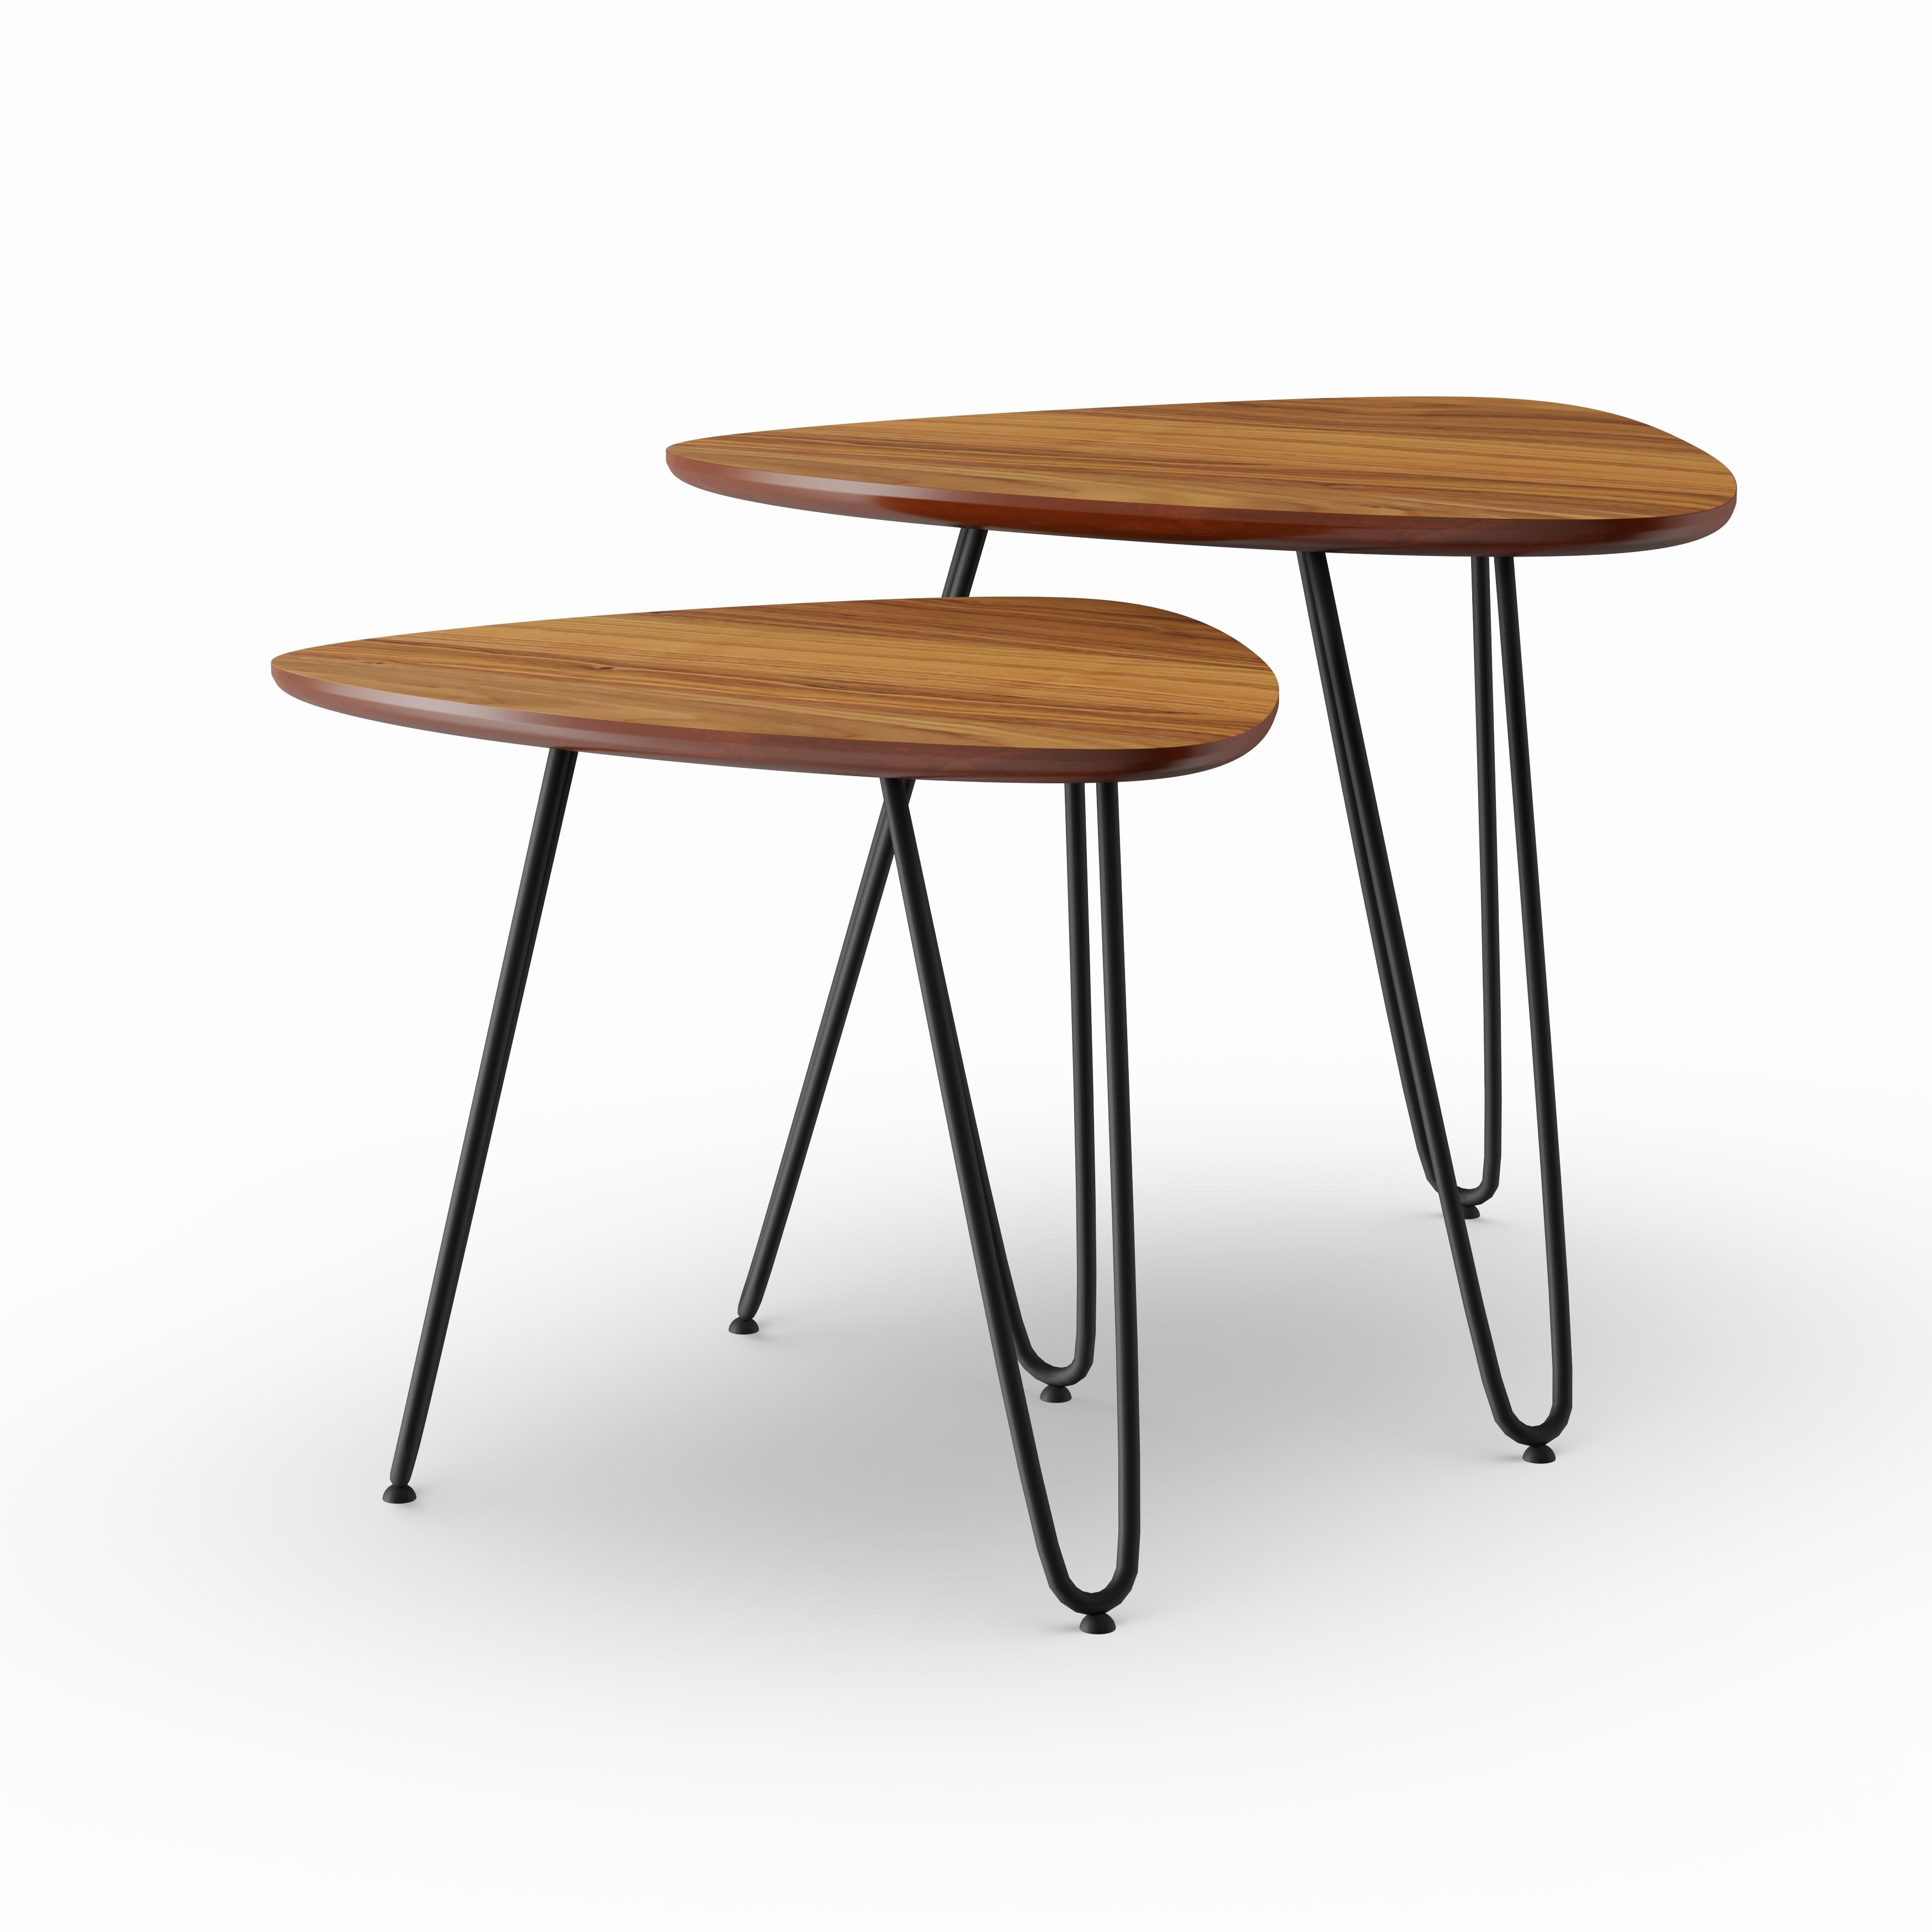 Carson Carrington Arendal Guitar Pick Nesting Coffee Table Set – 18 X 18 X  15H In Newest Carson Carrington Arendal Guitar Pick Nesting Coffee Tables (View 5 of 20)